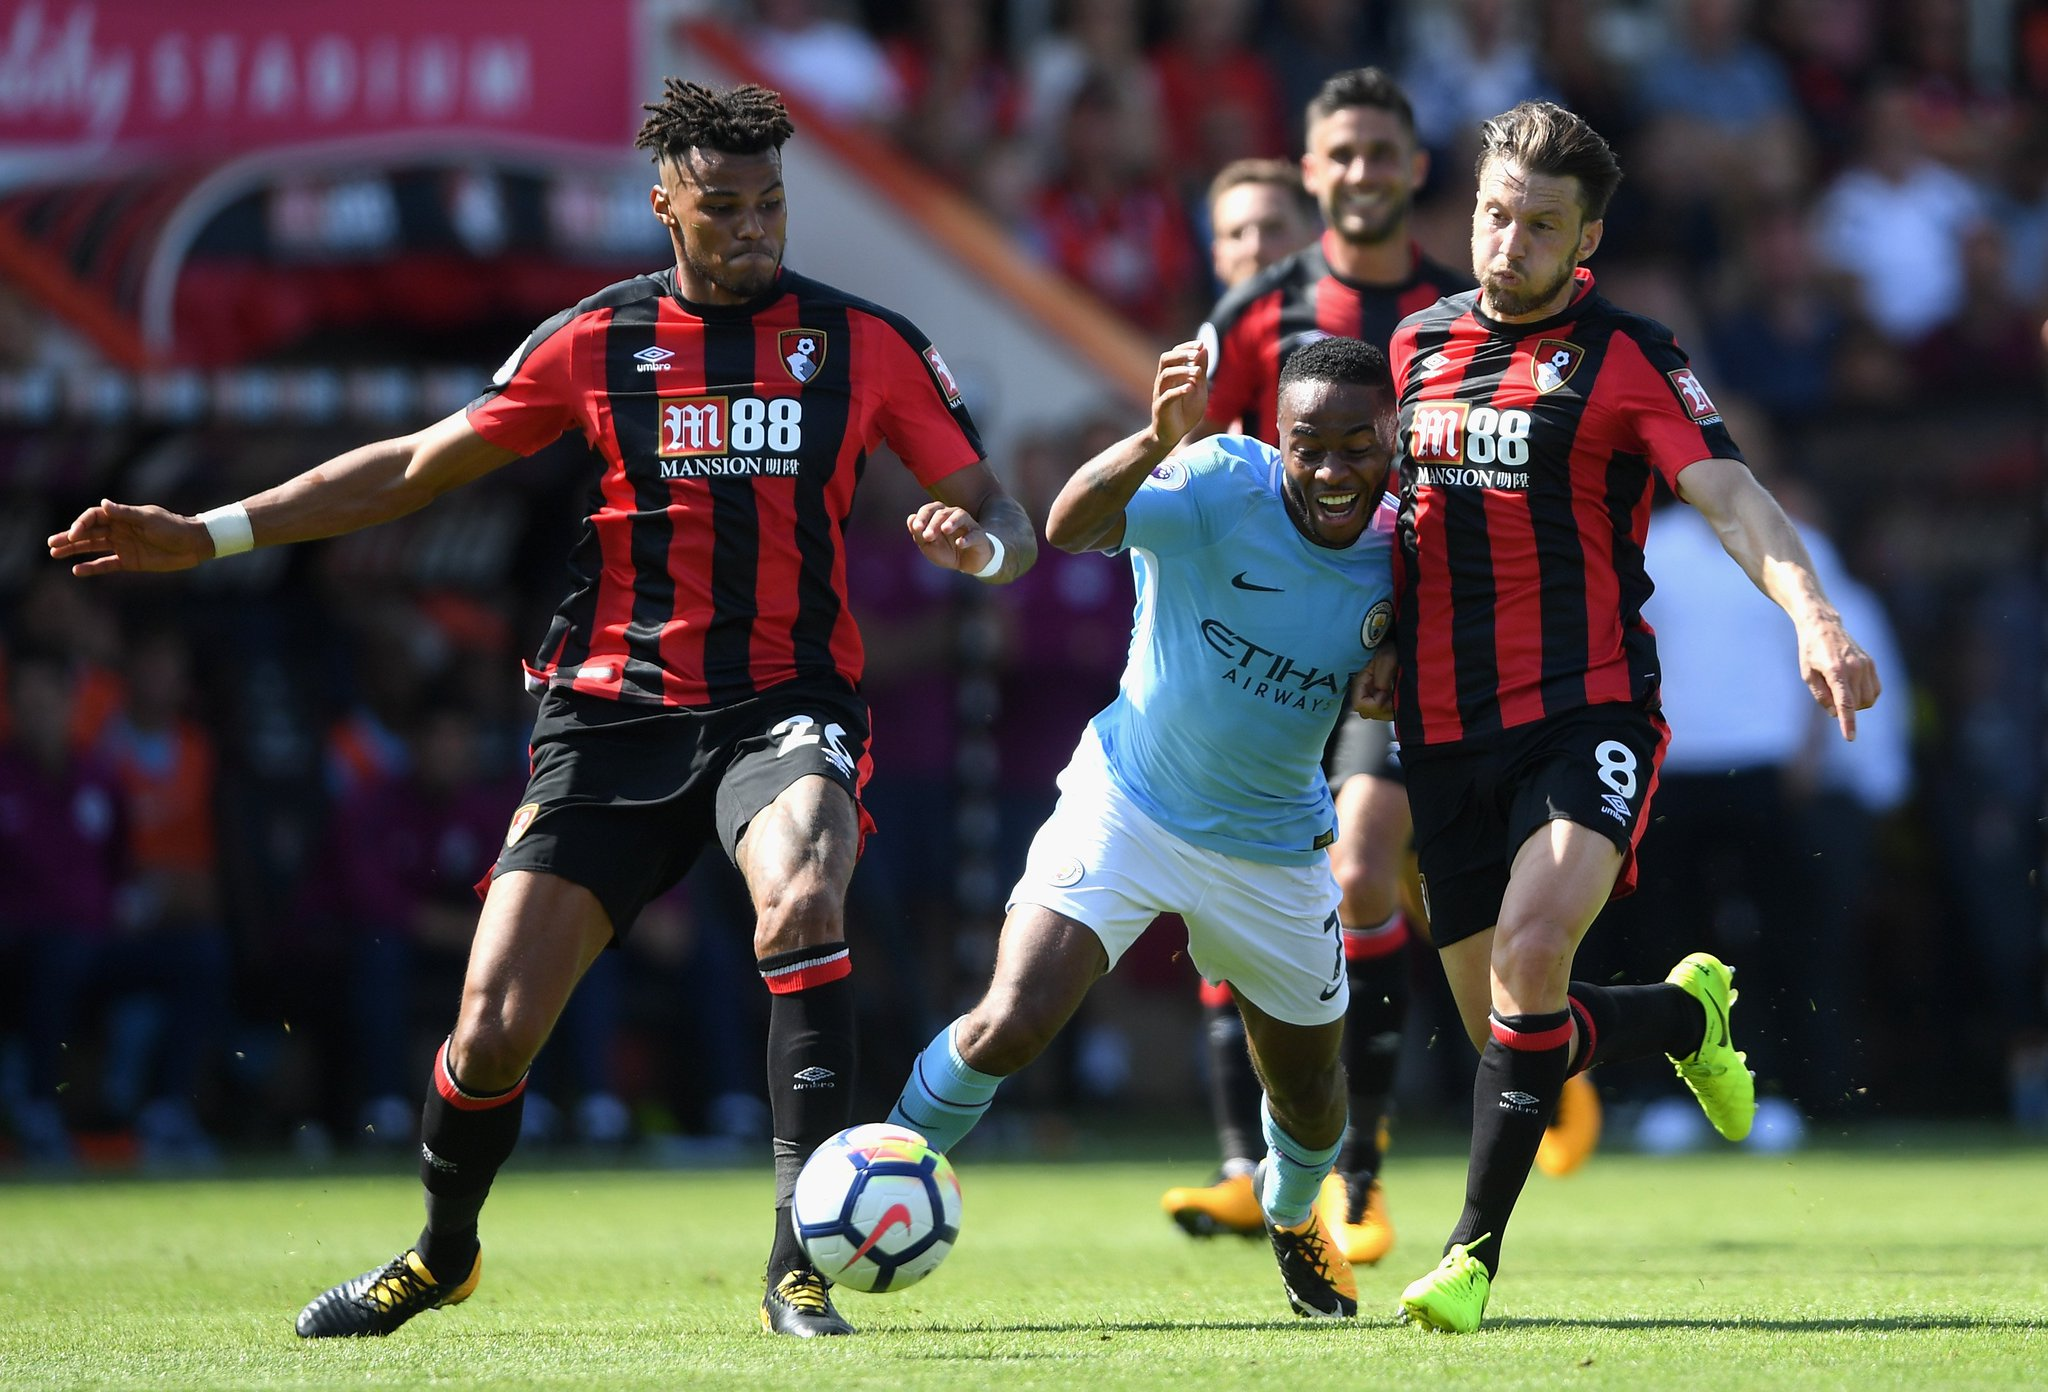 bournemouth vs man city - 1024×696